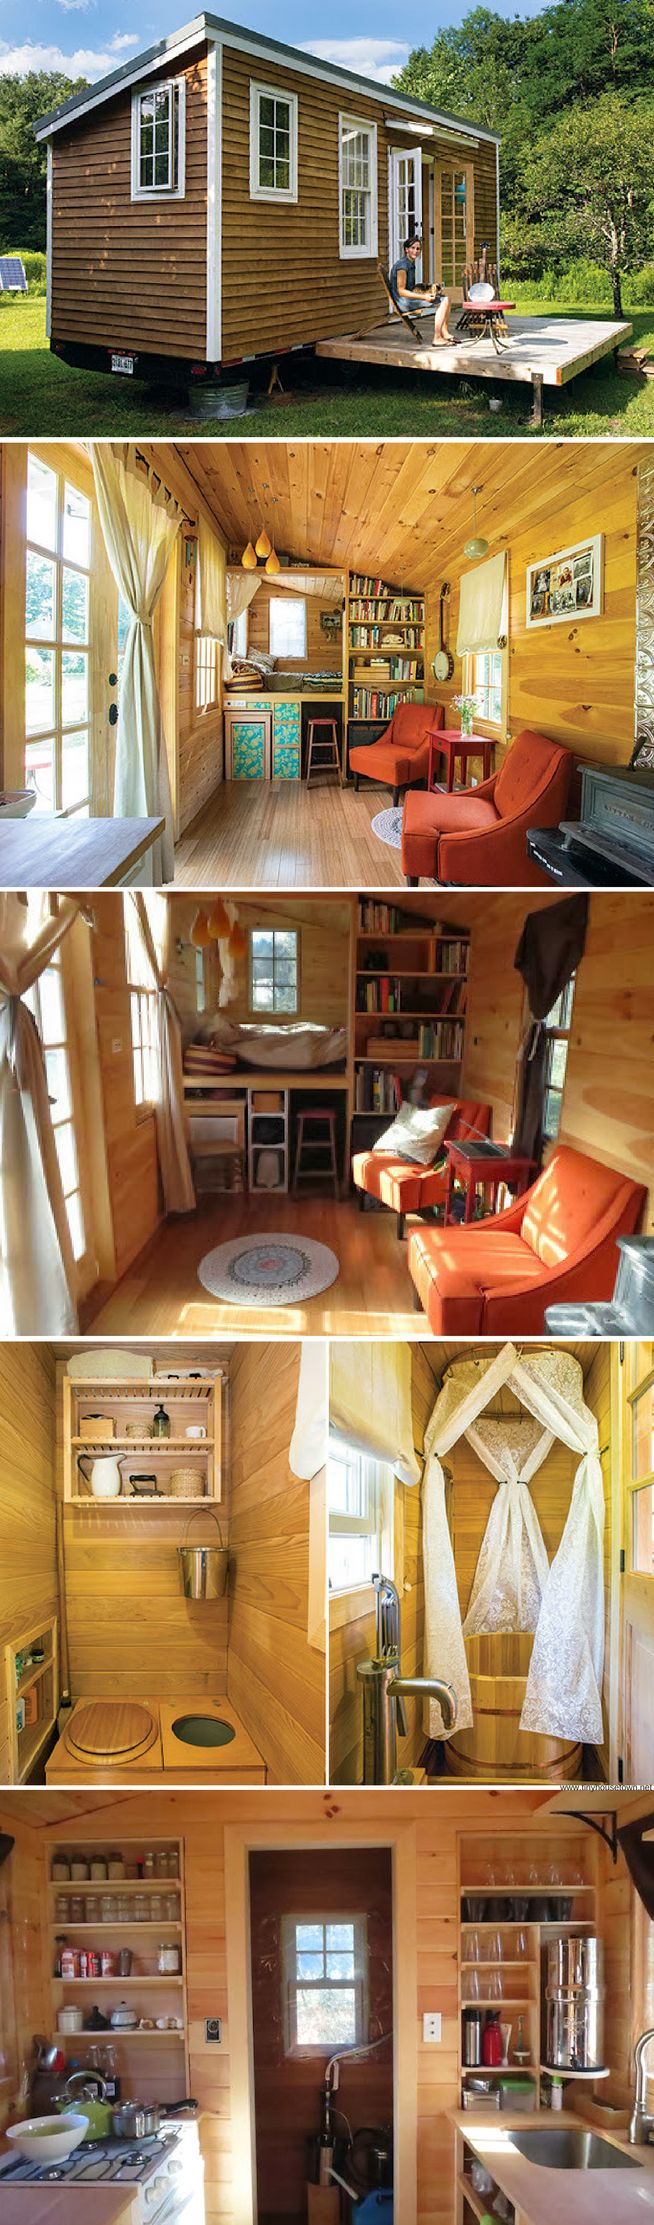 A Tiny House In Poughkeepsie Ny